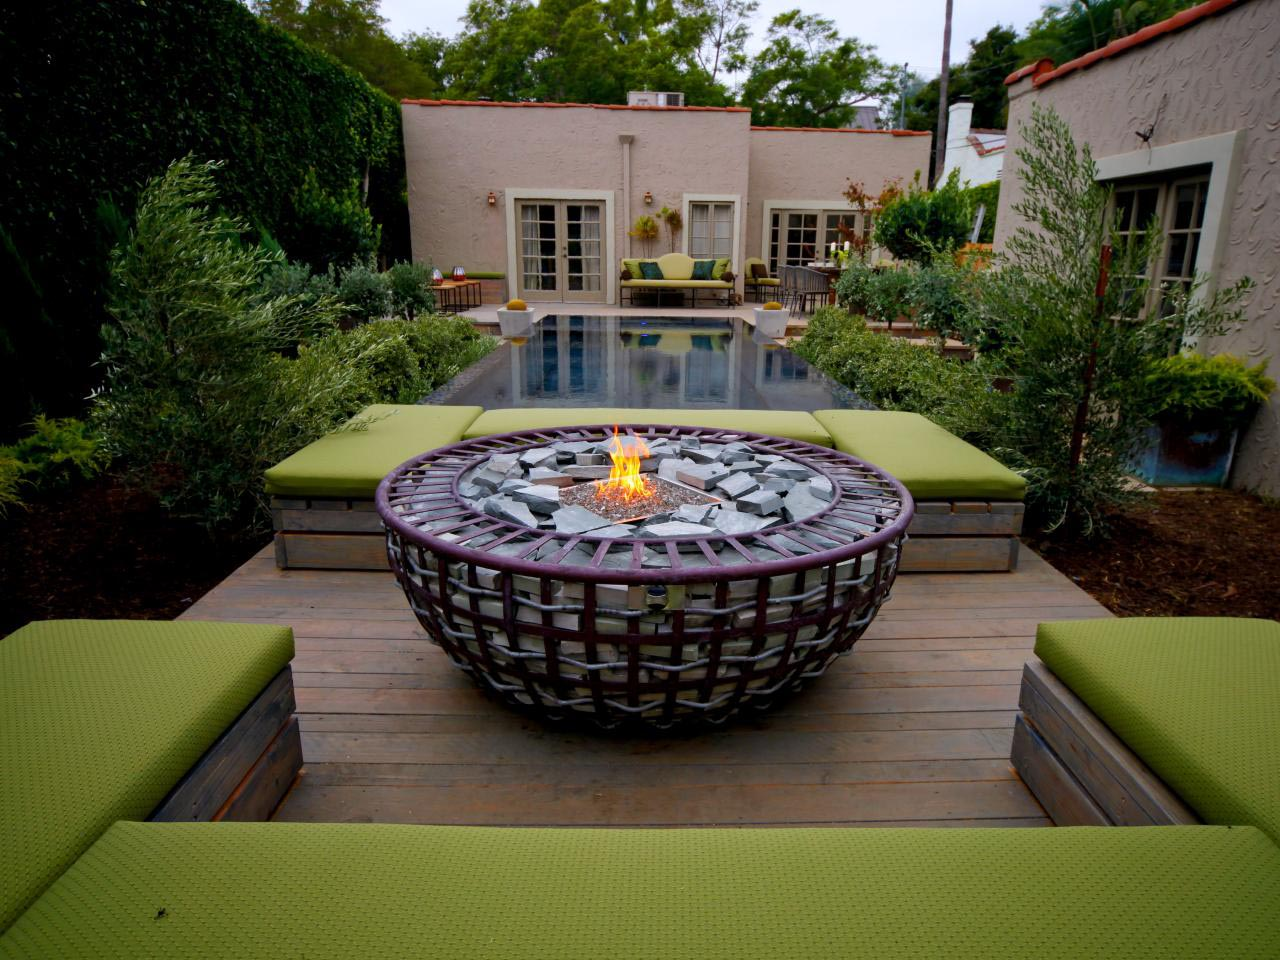 Simple backyard fire pit ideas fire pit design ideas Designer backyards